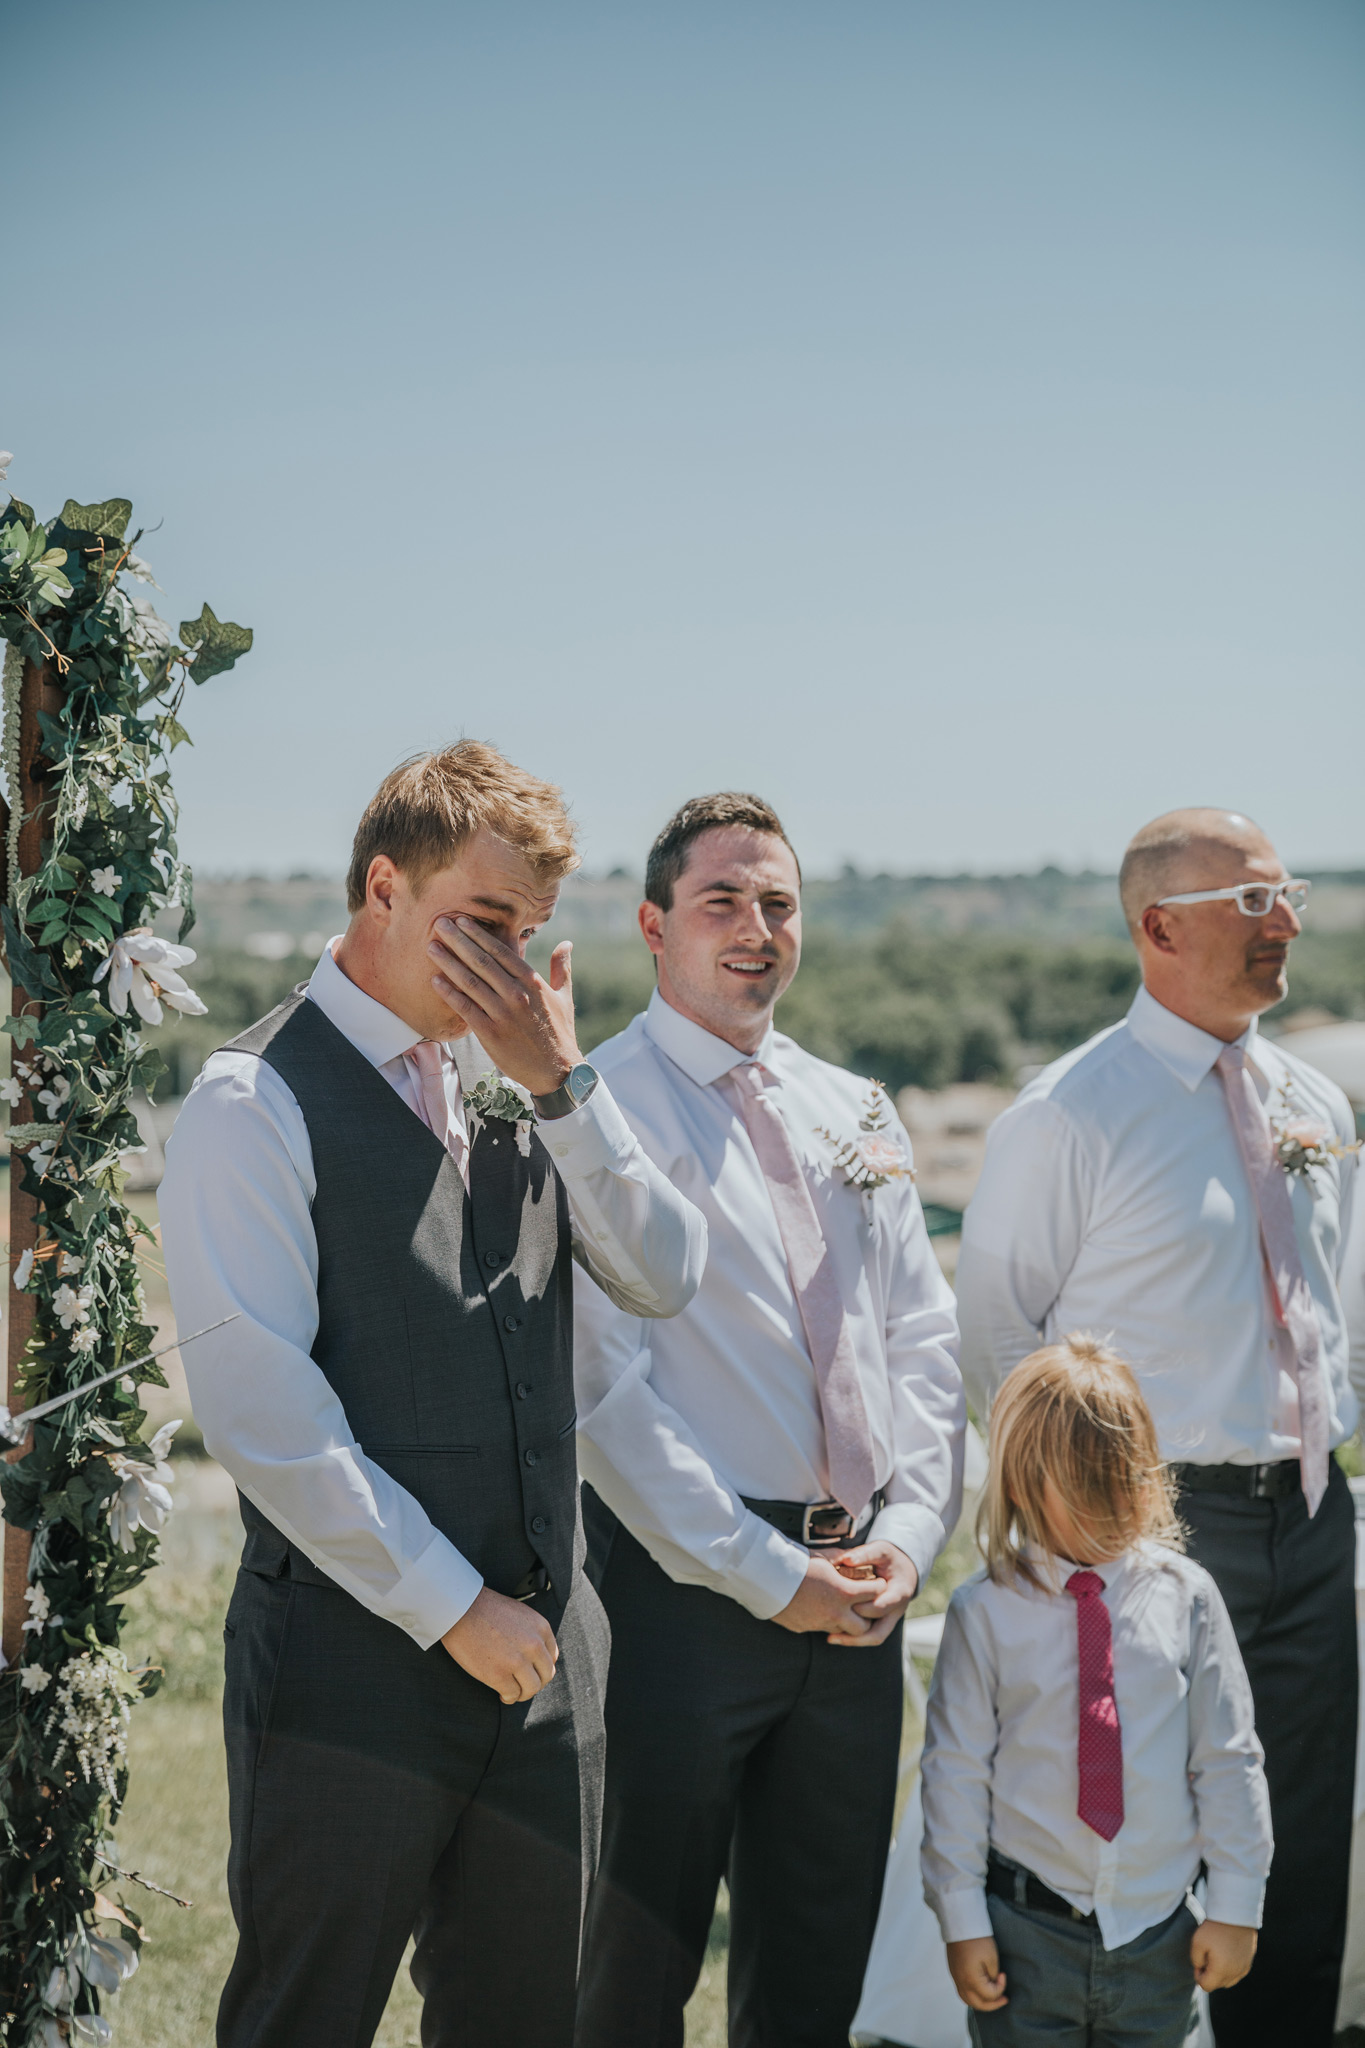 groom wiping away tears as the bride comes down the aisle